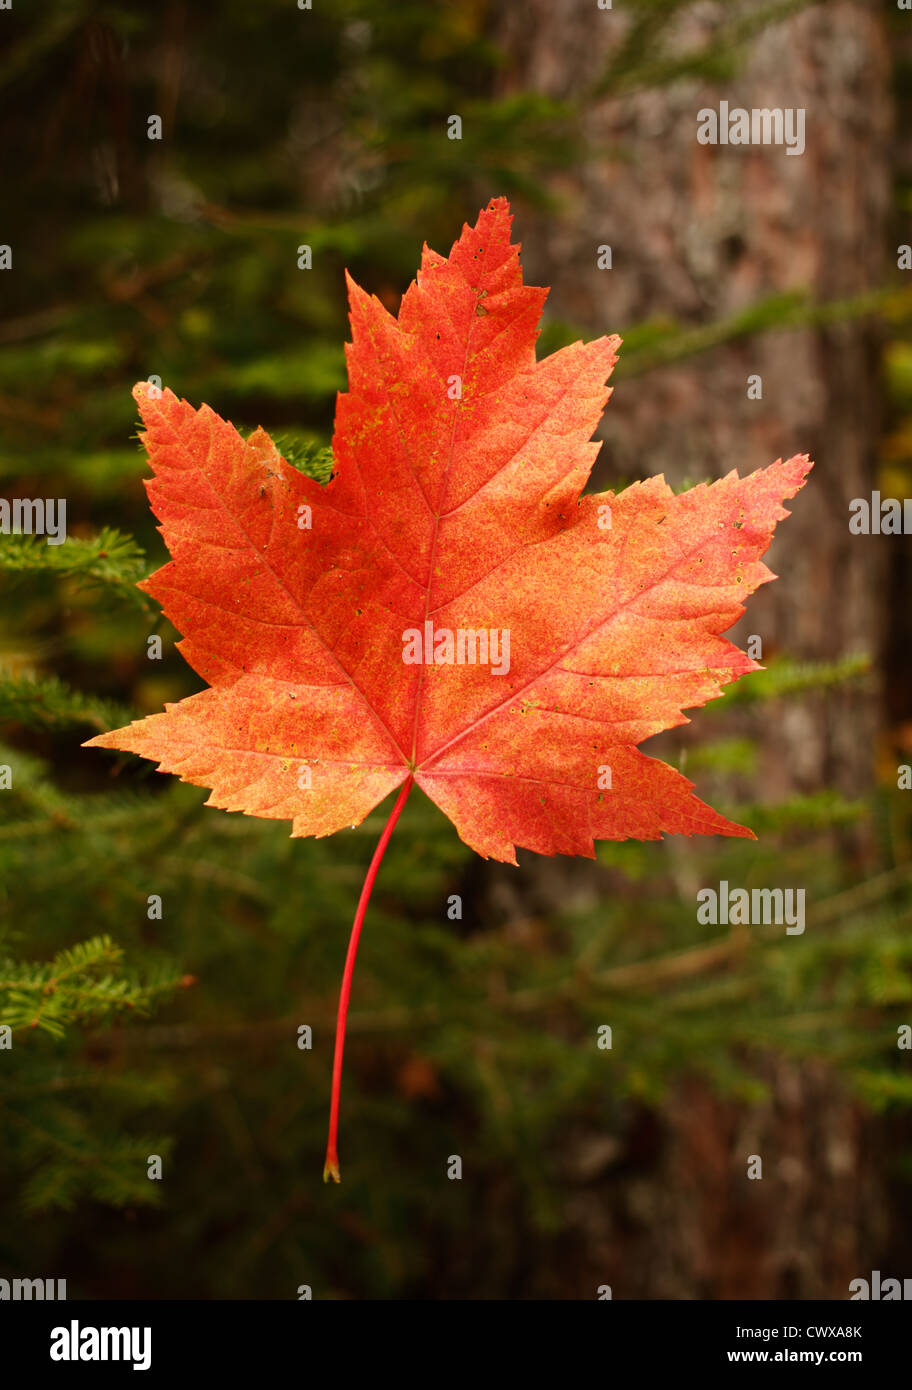 Reddish orange autumn maple leaf in a Northern Minnesota forest. - Stock Image